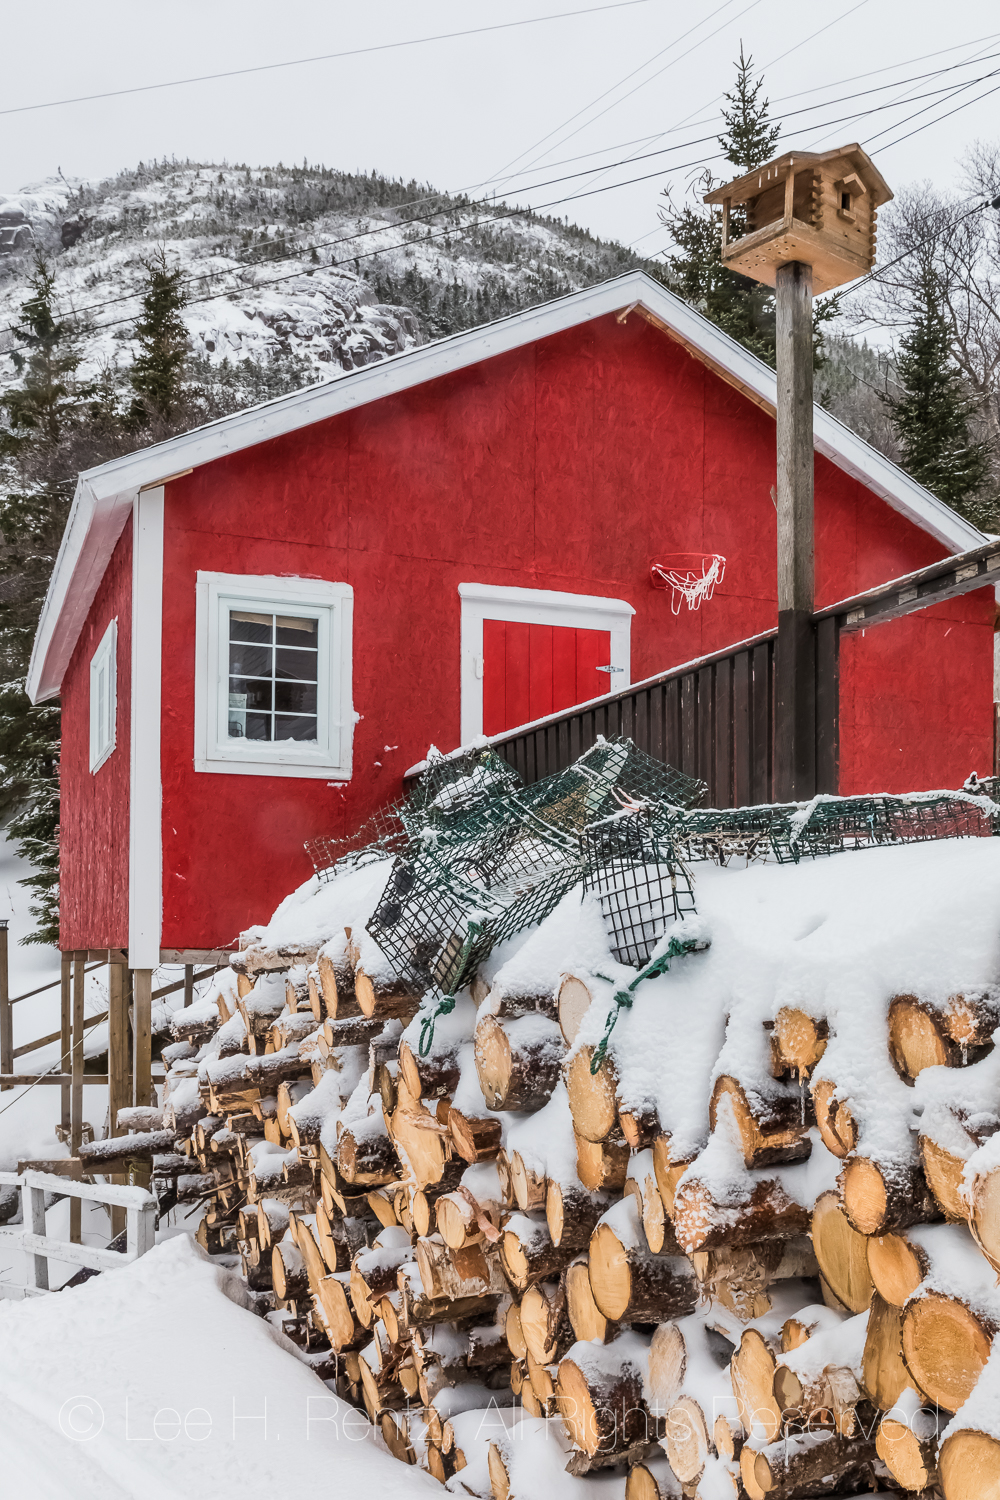 Fishing Boat in Francois Outport during a Snowstorm in Newfoundl